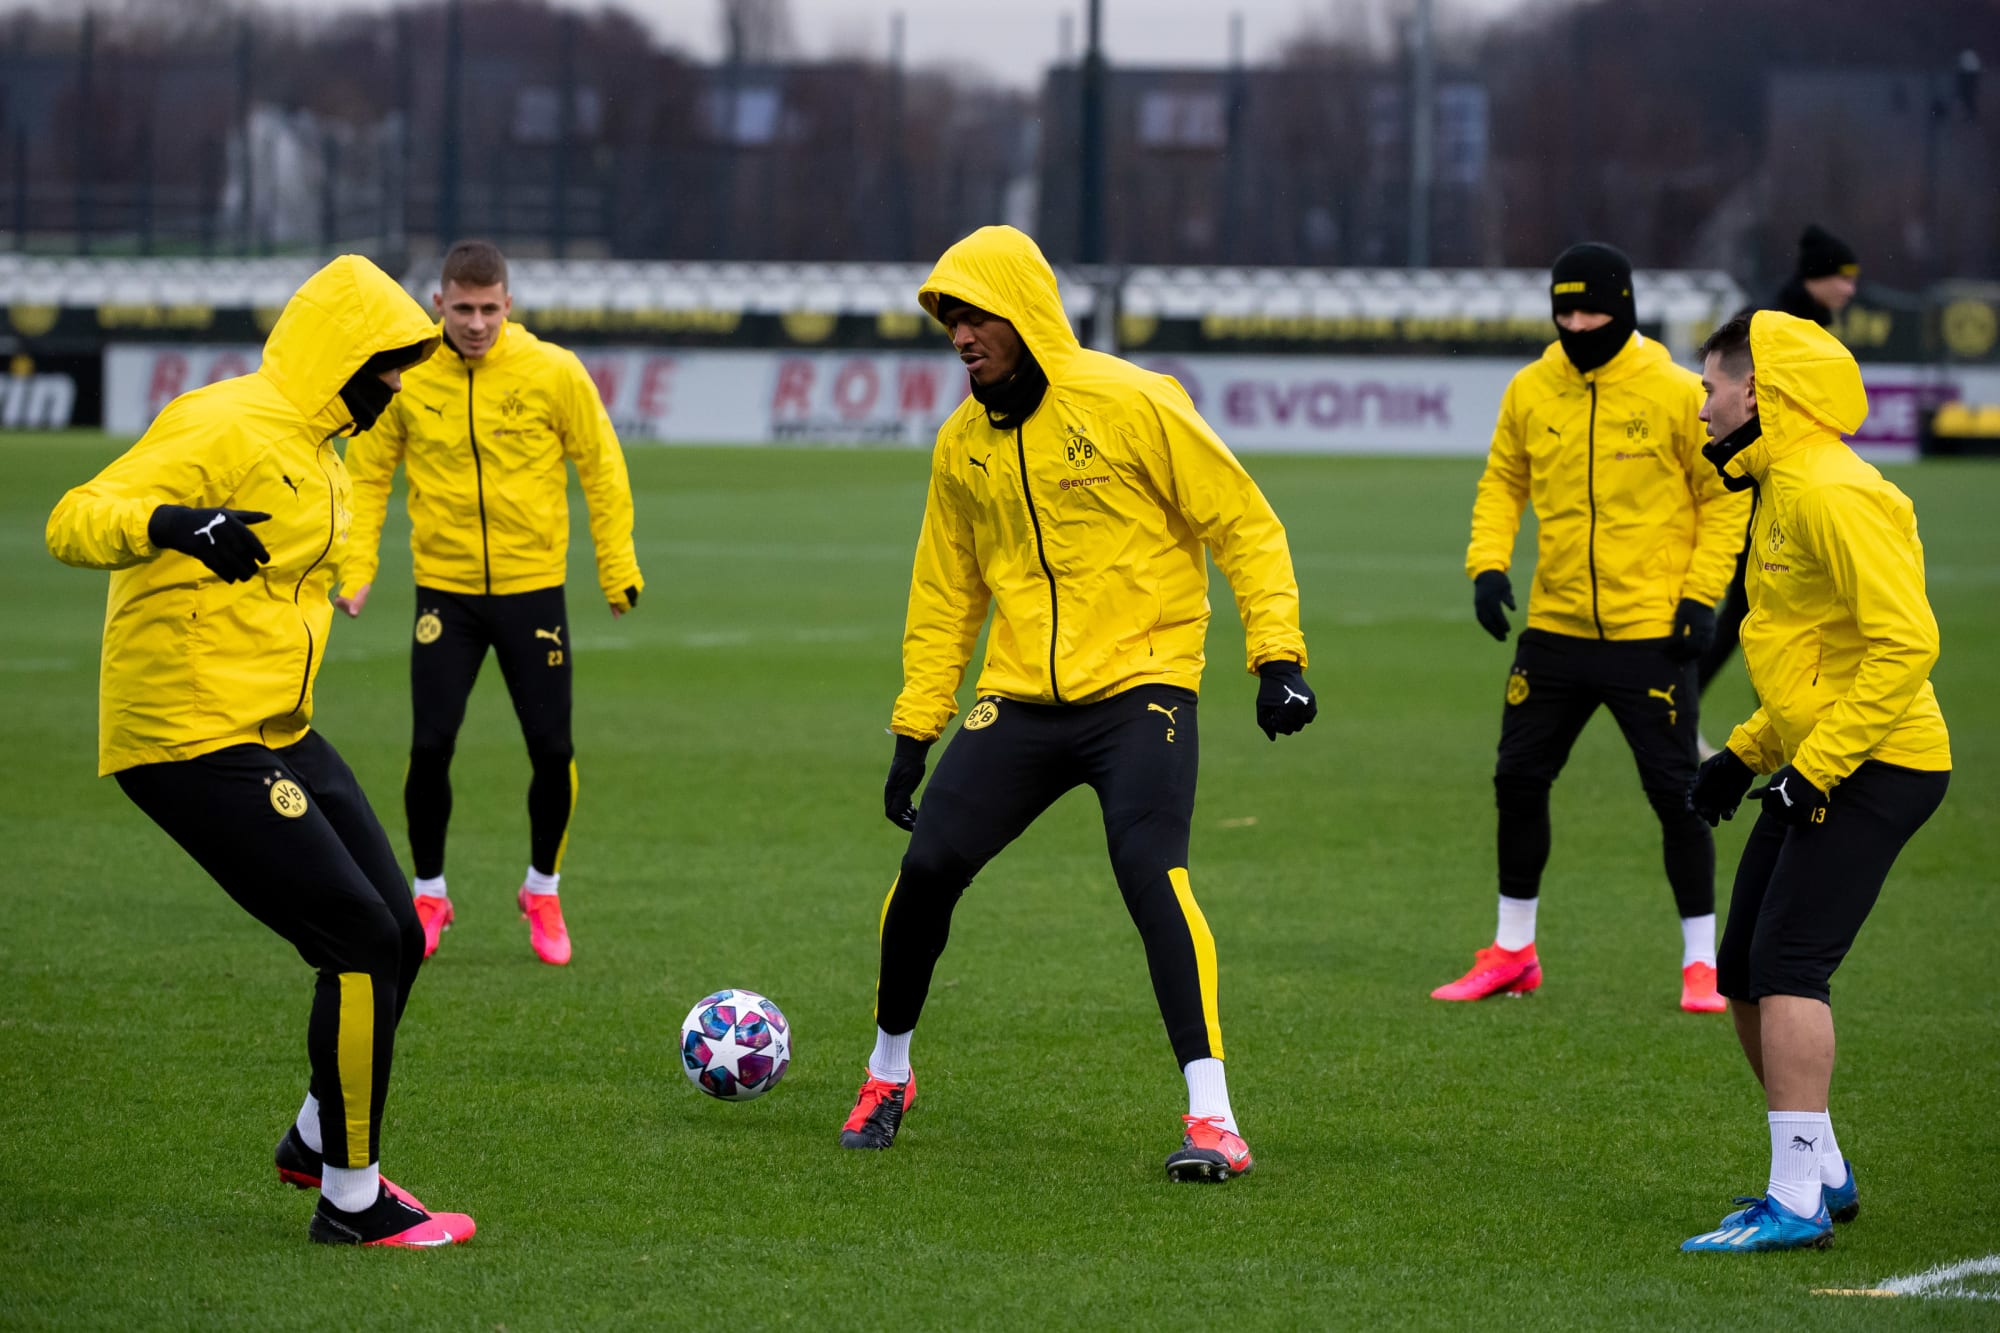 All coronavirus tests negative: Borussia Dortmund set to start training on Monday